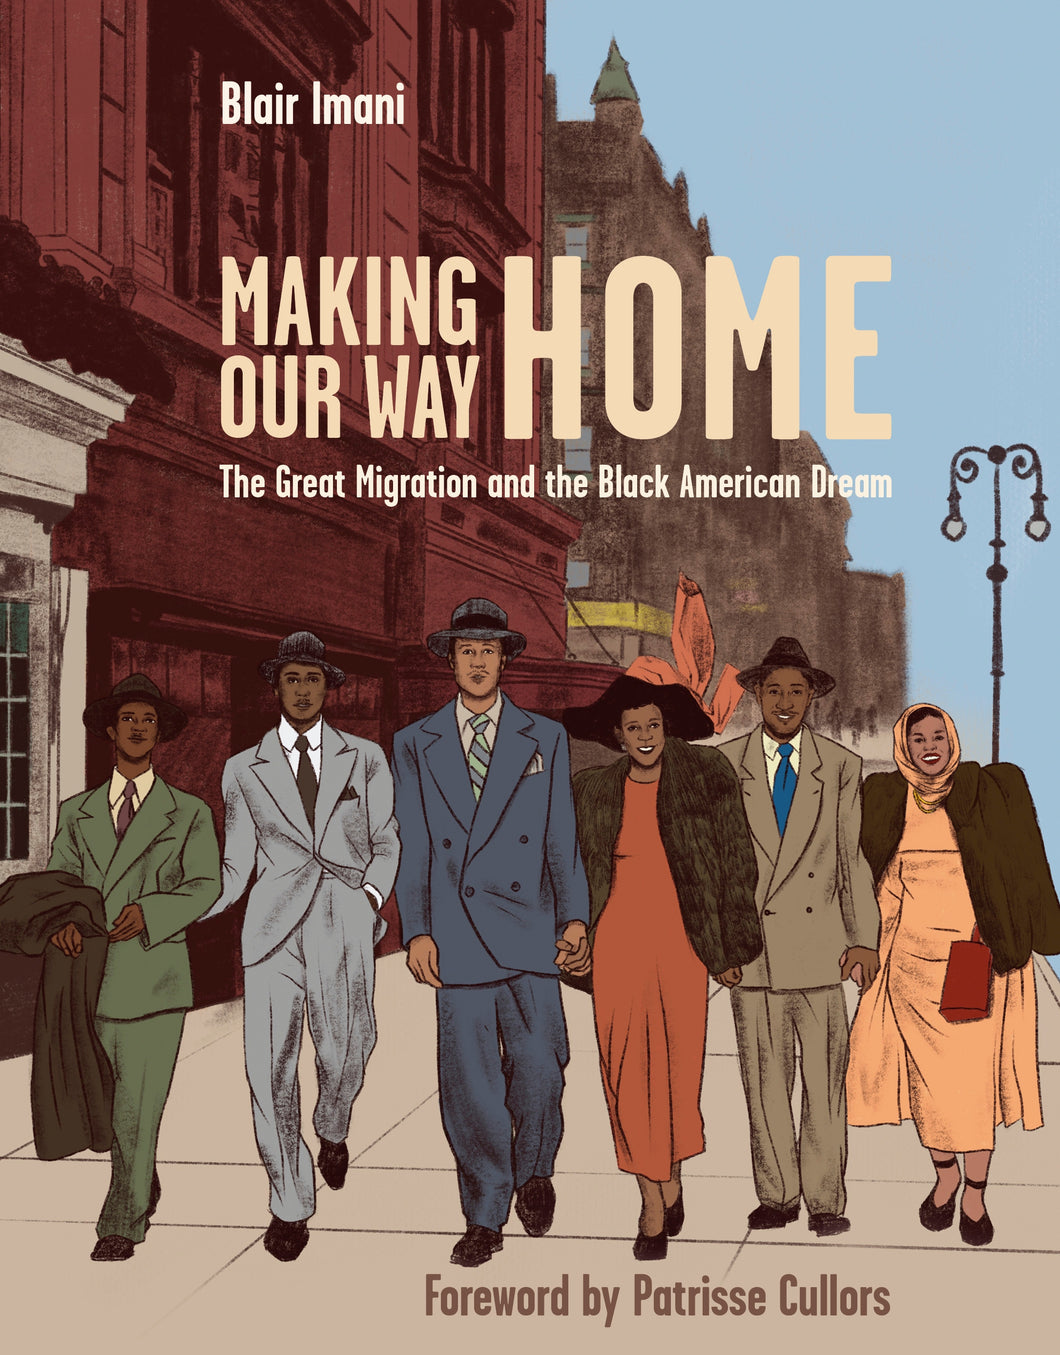 Making Our Way Home: The Great Migration and the Black American Dream by Blair Imani